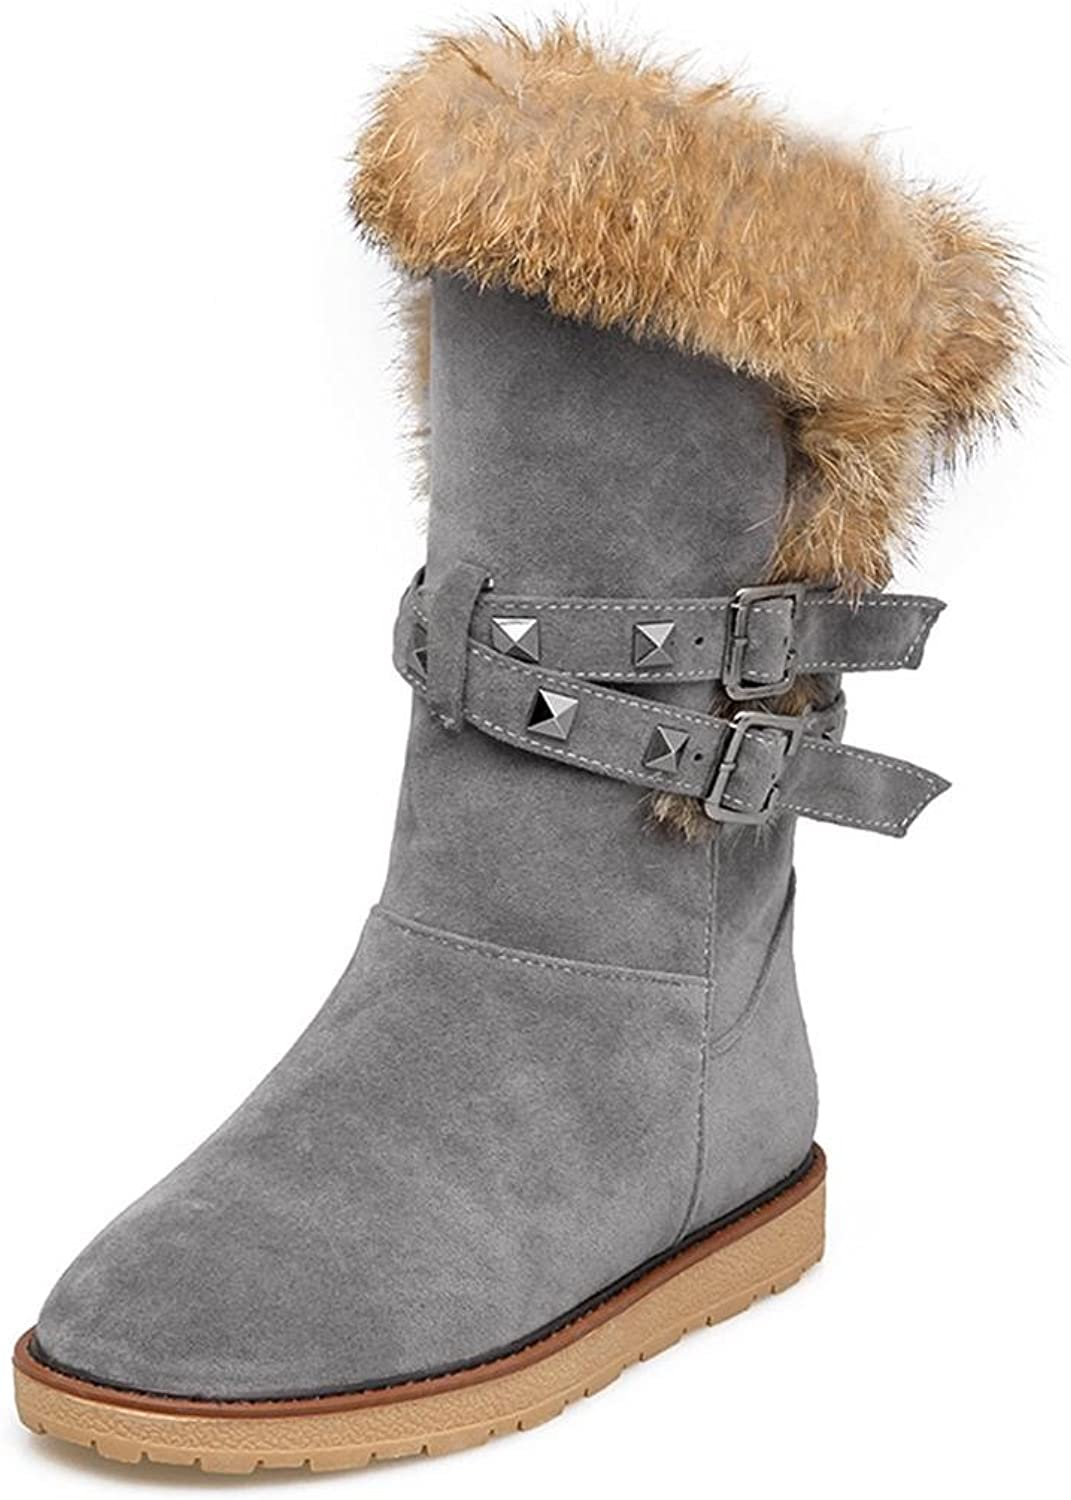 XUANshoes M&M Women Belt Buckle Large Size Snow Boots Flat Scrub in The Tube Female Boots